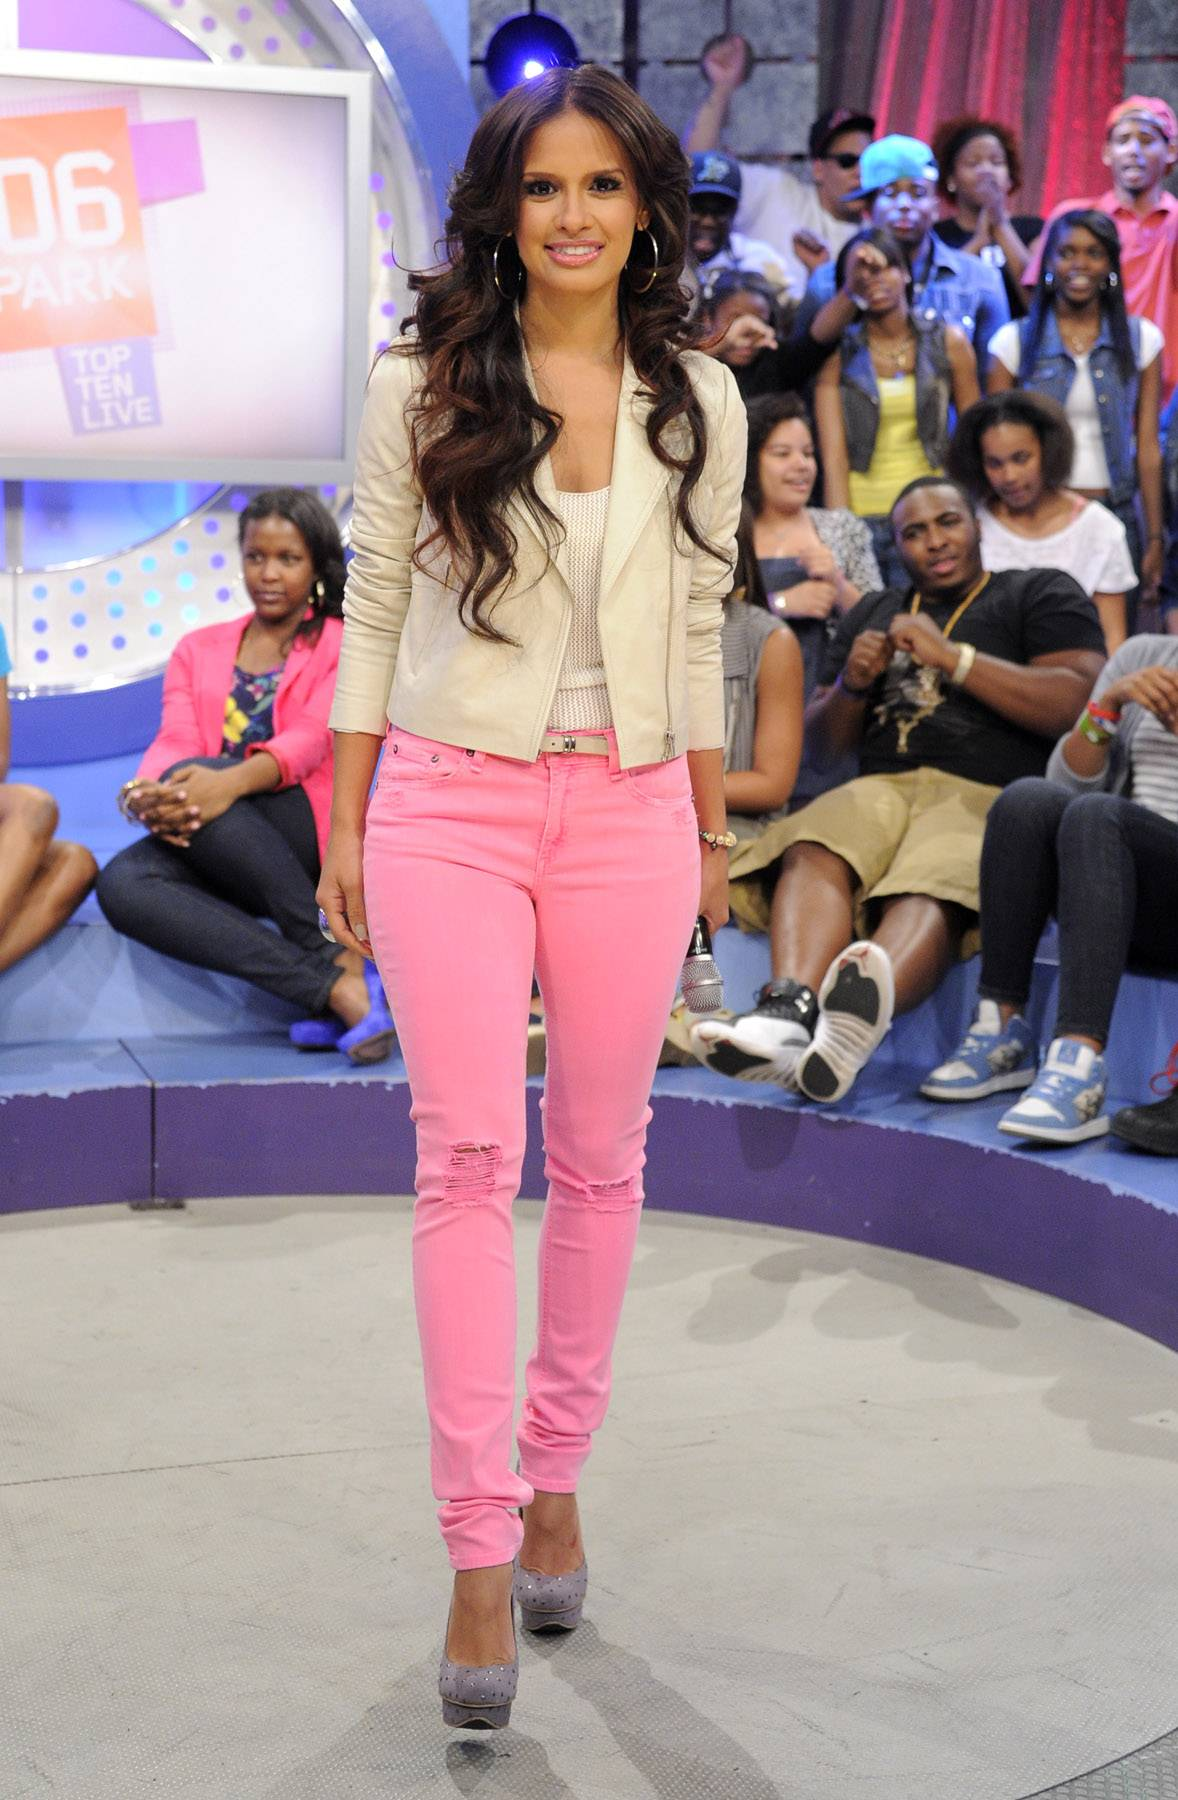 Ripped Jeans - Rocsi kept this outfit simple and let you focus on her lavender studded platform heels.(Photo: John Ricard/BET)